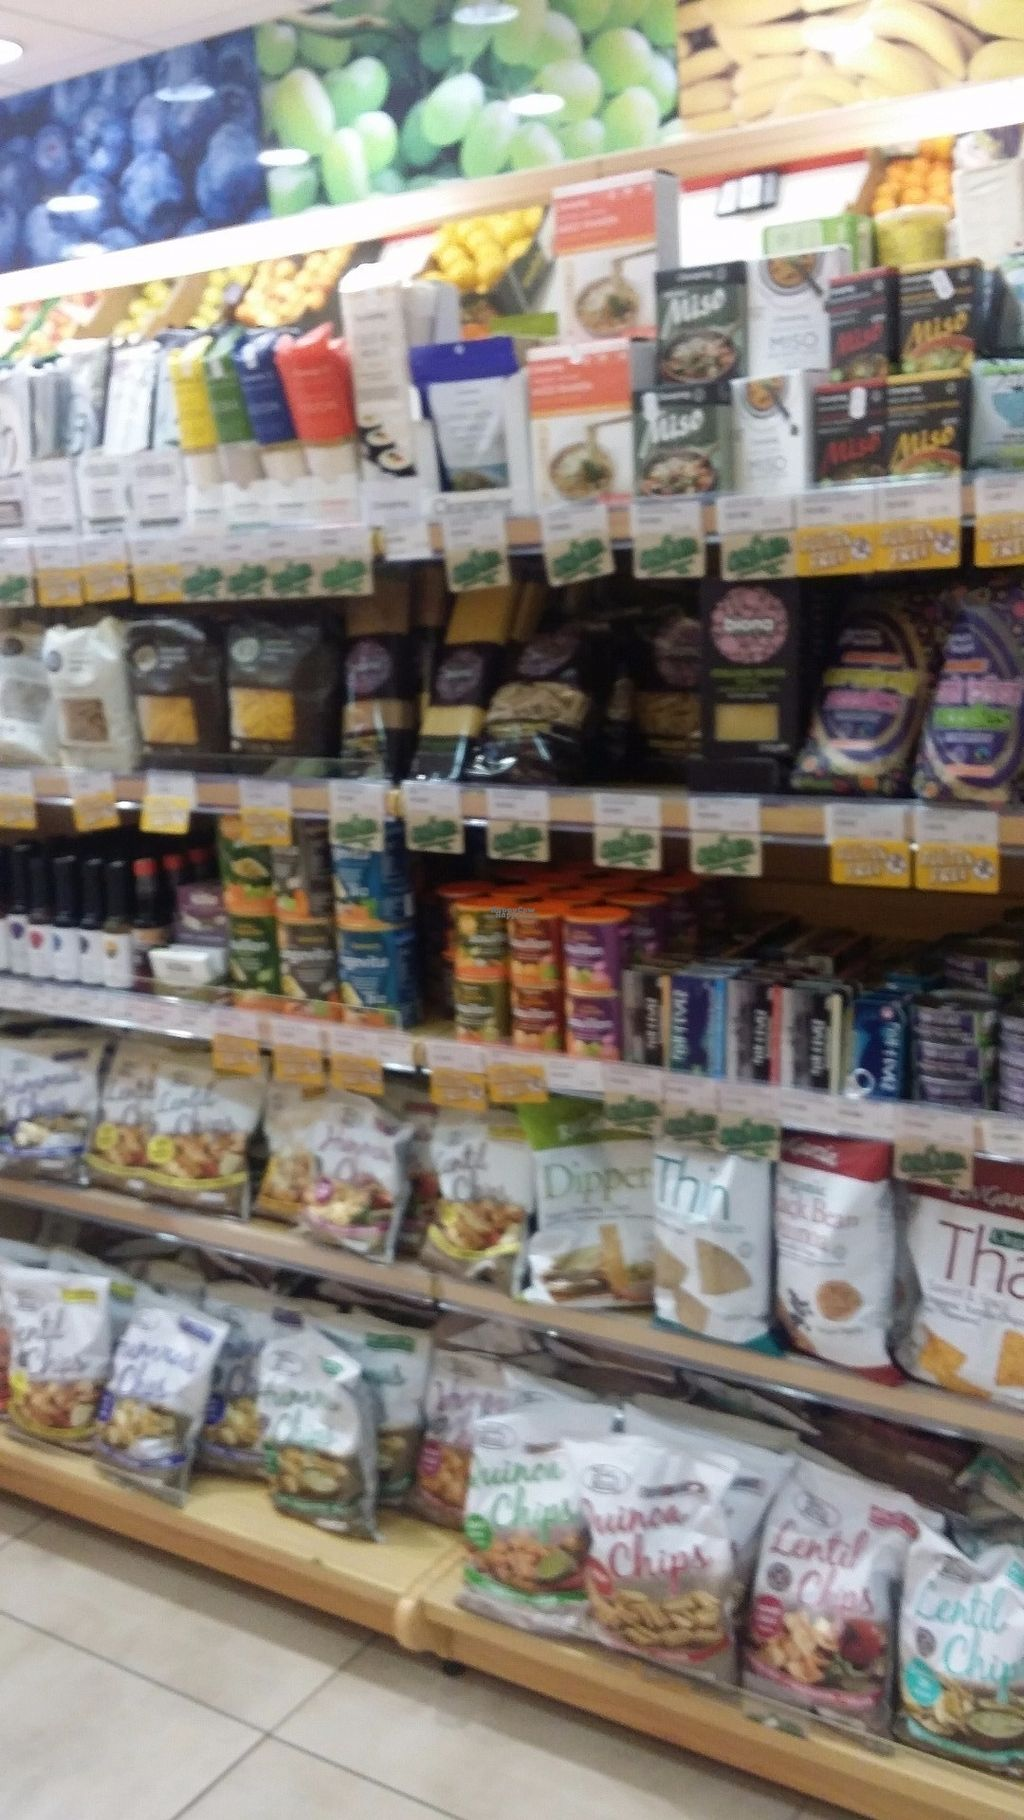 """Photo of CLOSED: Fruit Garden  by <a href=""""/members/profile/roguesby"""">roguesby</a> <br/>Snacks and staple products <br/> August 26, 2016  - <a href='/contact/abuse/image/79138/171519'>Report</a>"""